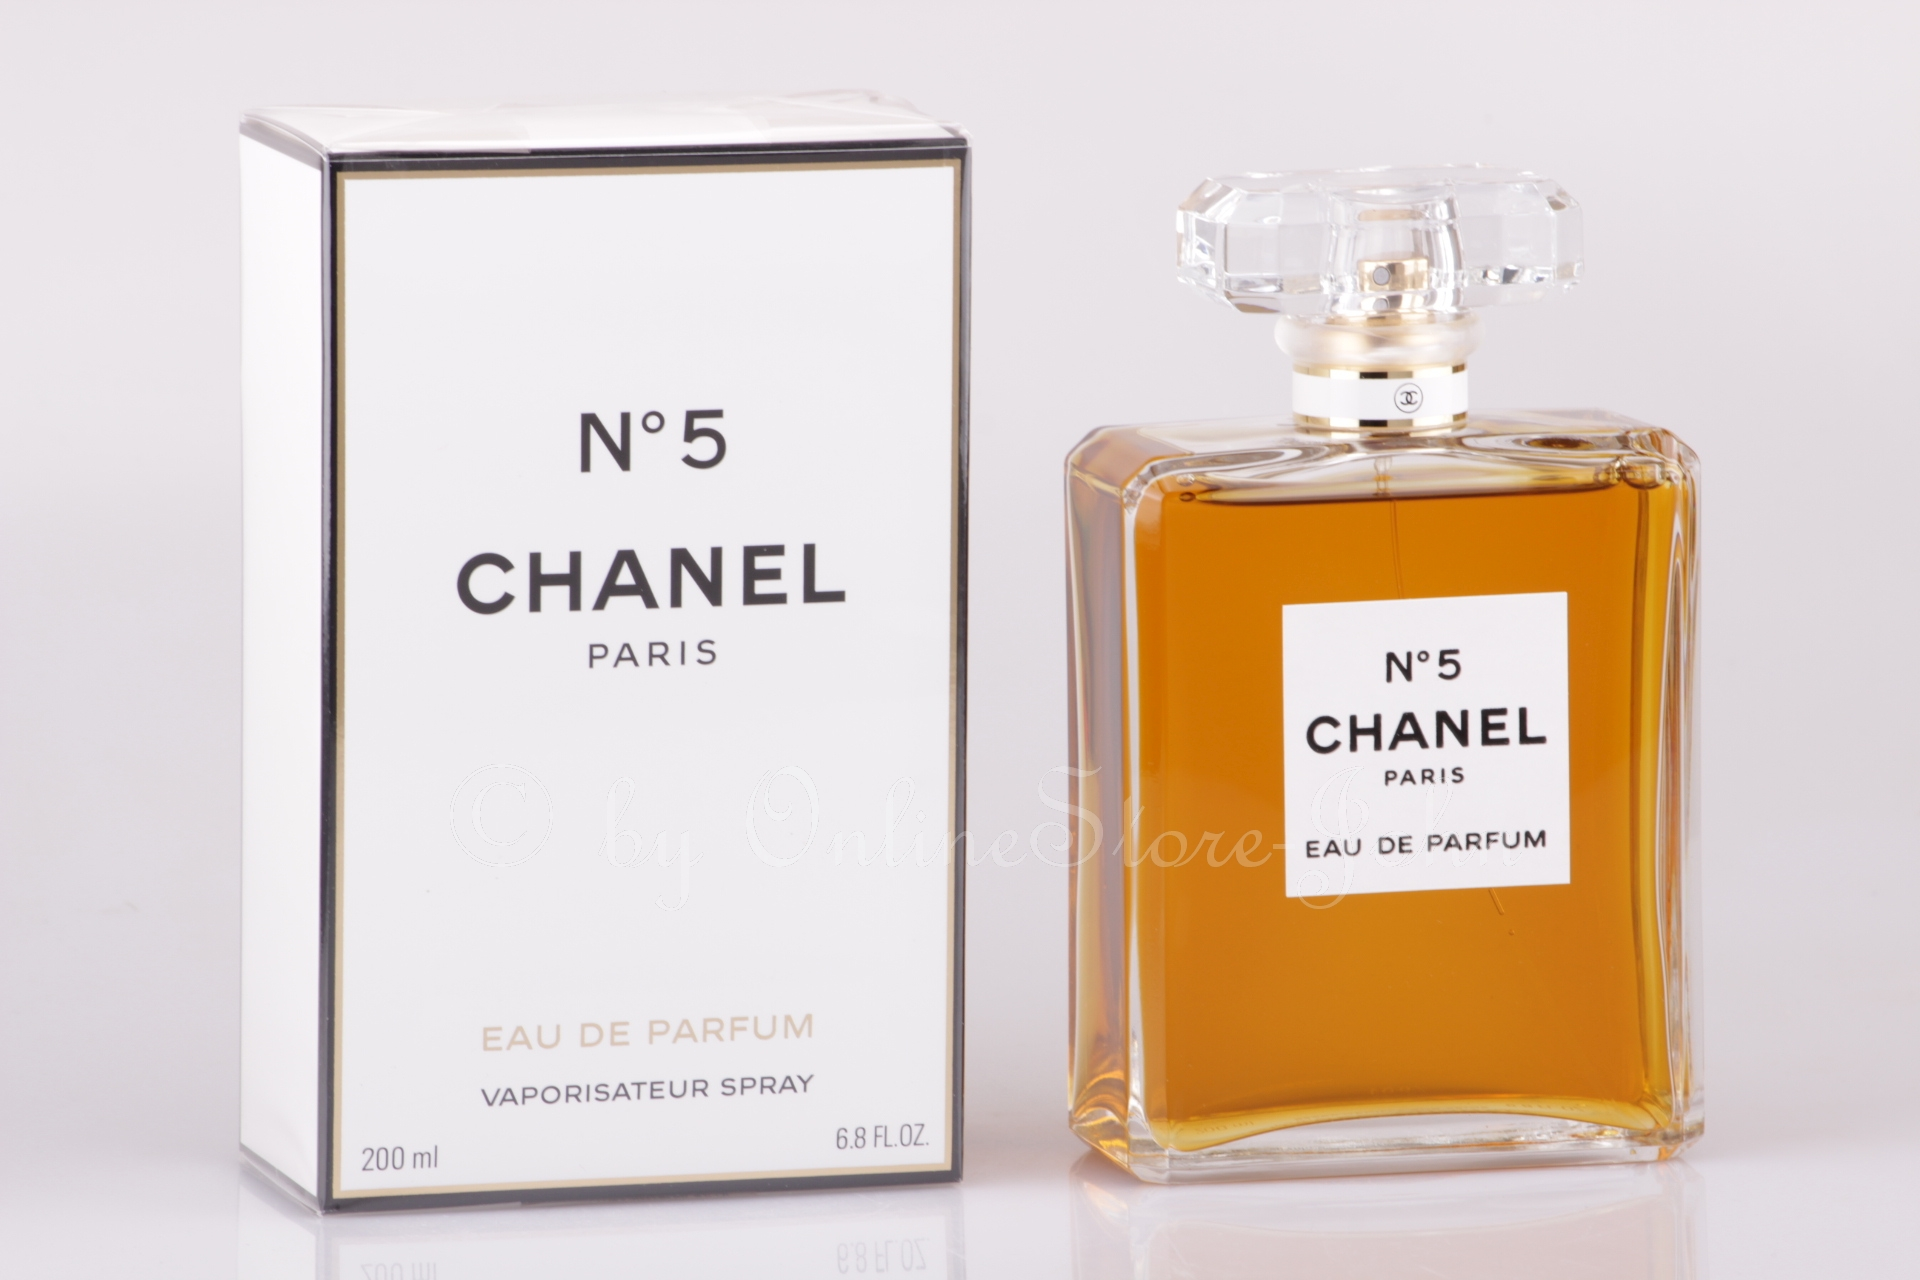 chanel n 5 200ml eau de parfum eau de parfum neuf emball ebay. Black Bedroom Furniture Sets. Home Design Ideas